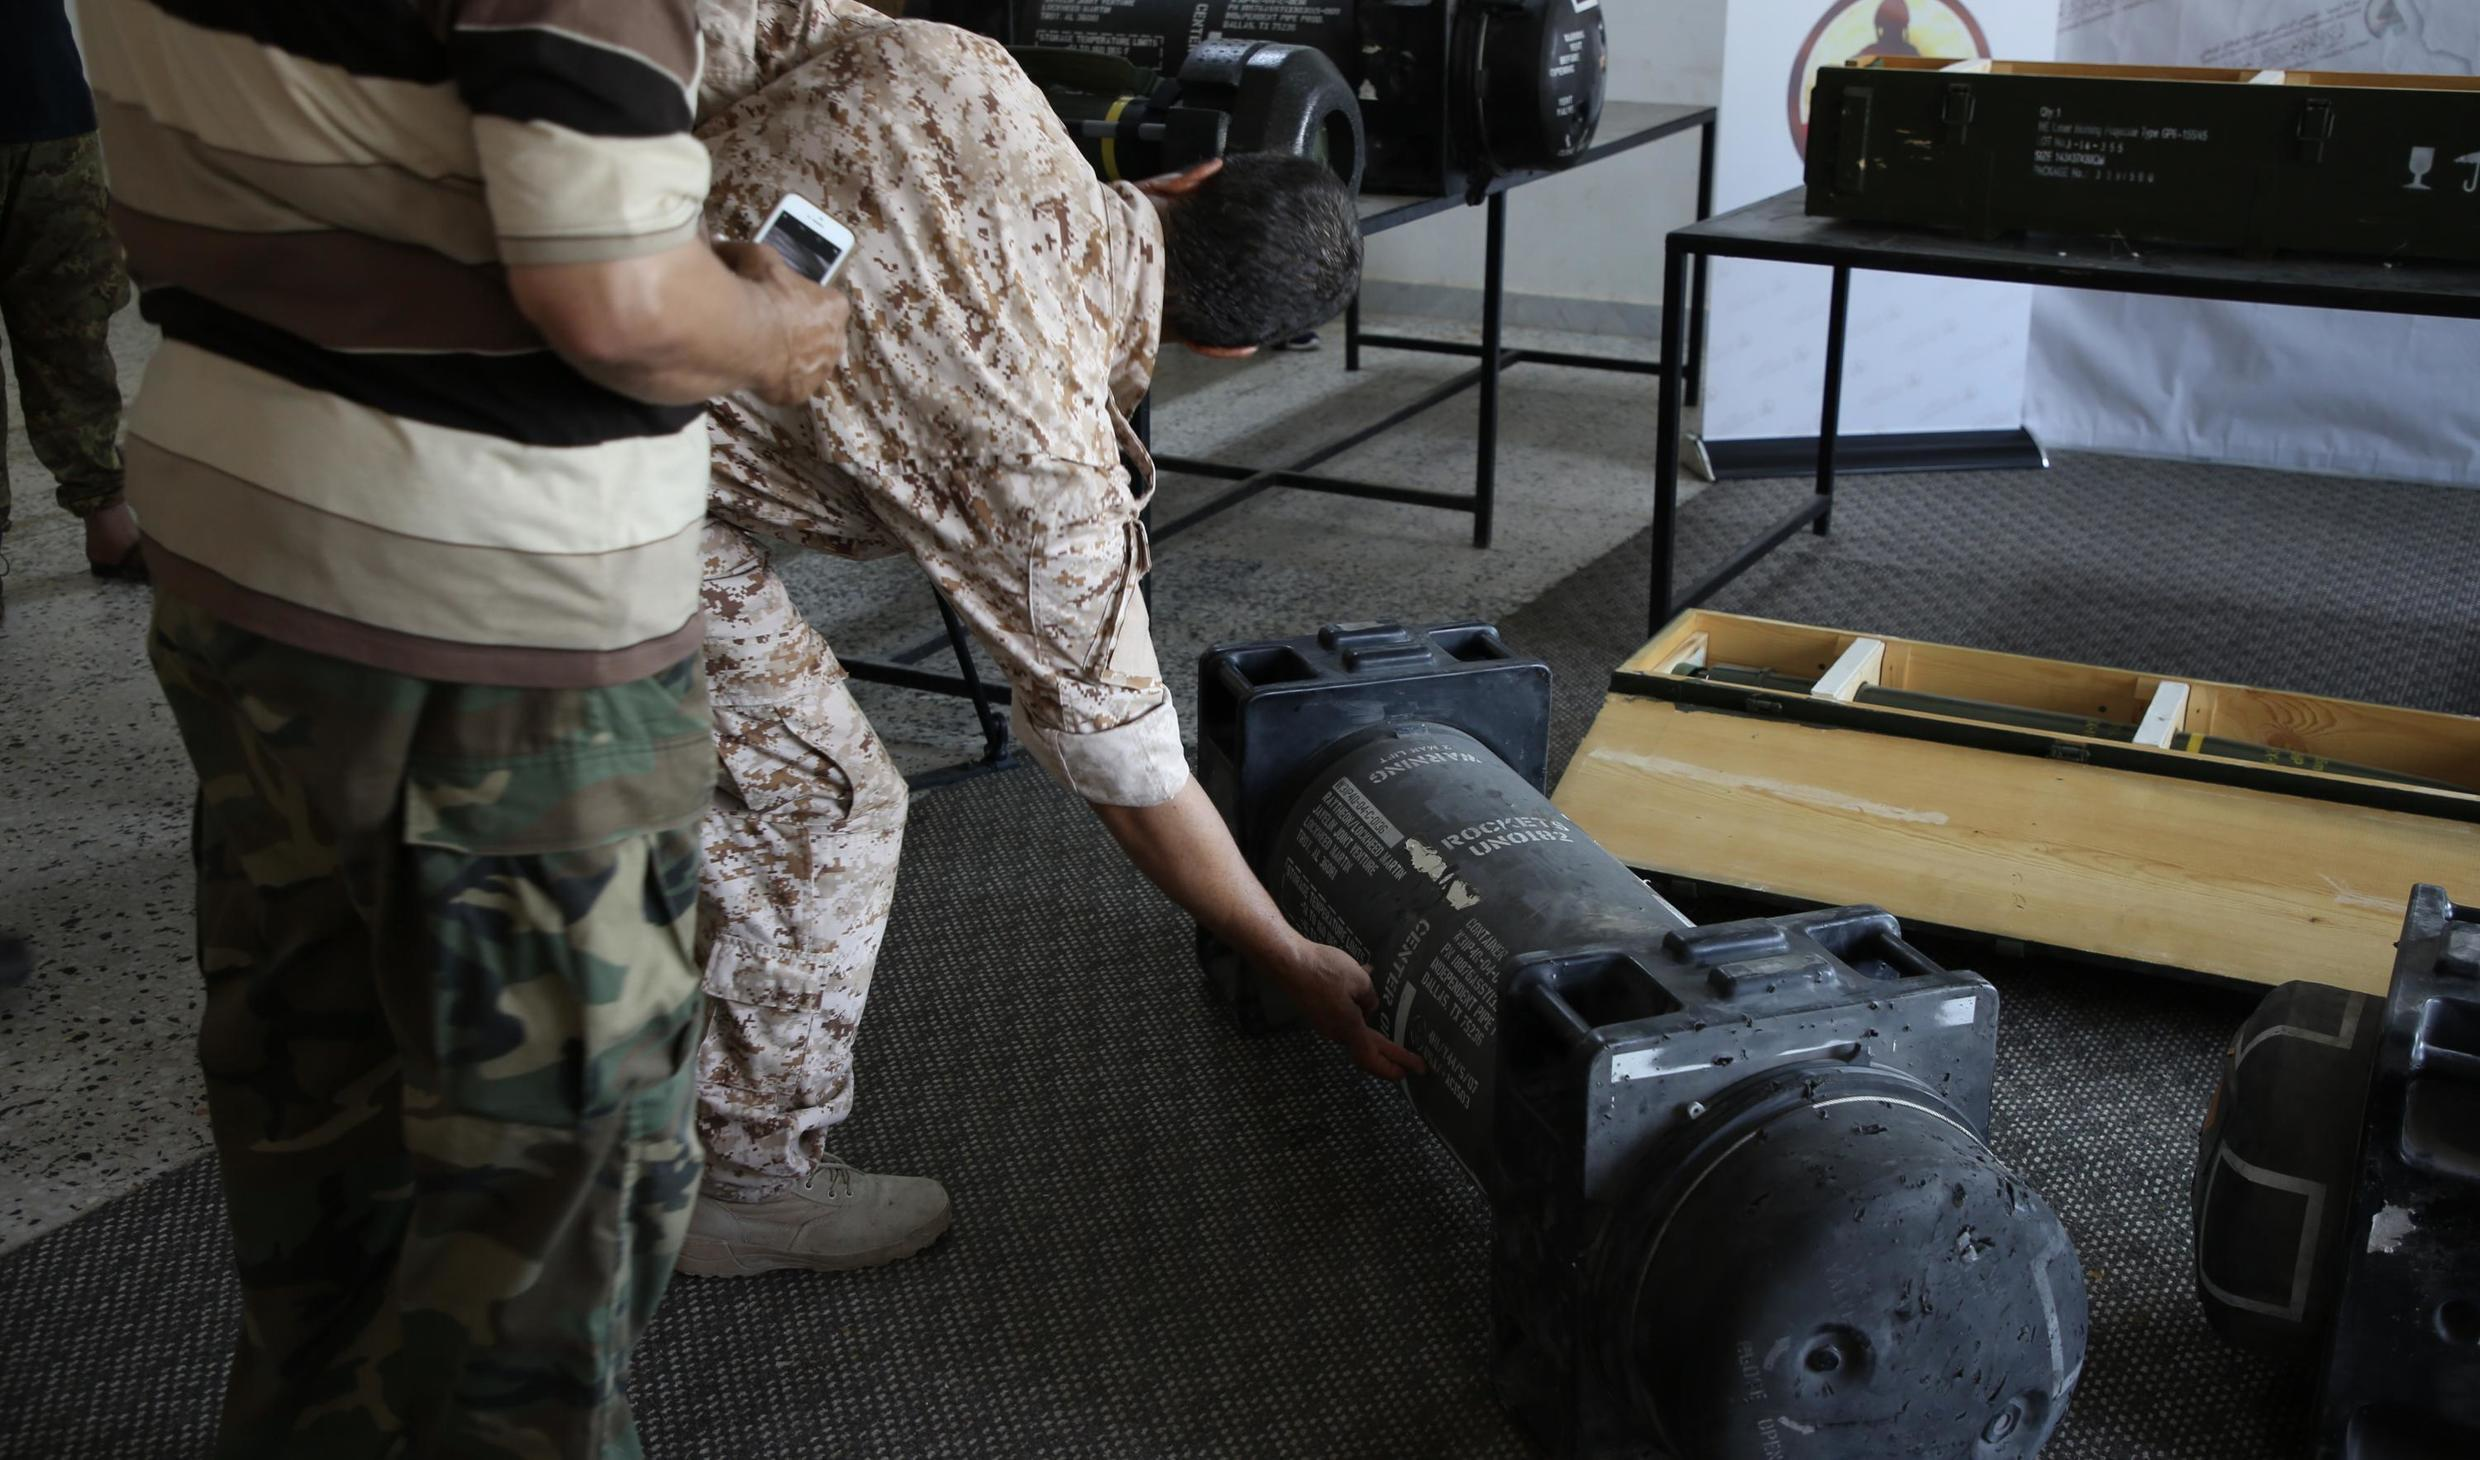 The French defence ministry said on July 10, 2019 that its missiles had been found on a base used by forces loyal to Libya's Khalifa Haftar, but it denied supplying them to the rebels which would be a breach of a UN arms embargo.